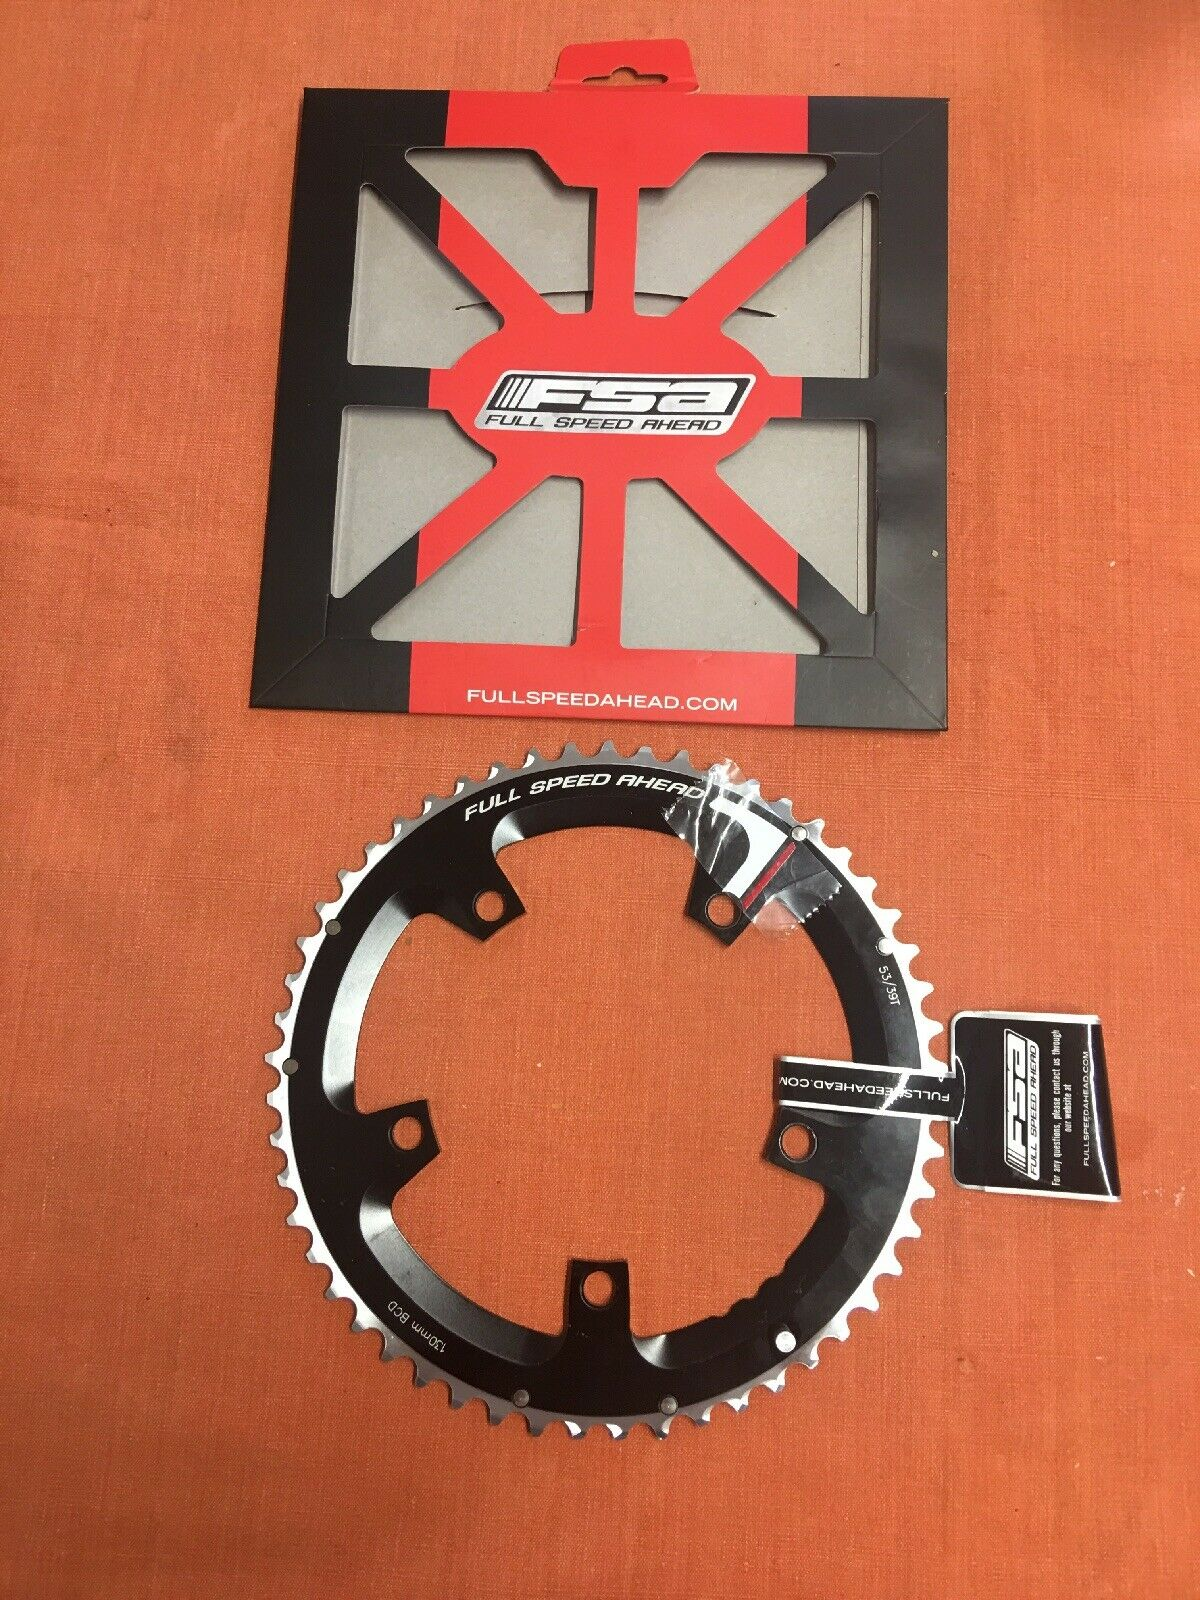 Fsa Full  Speed Ahead 53 39 130mm BCD  the best online store offer